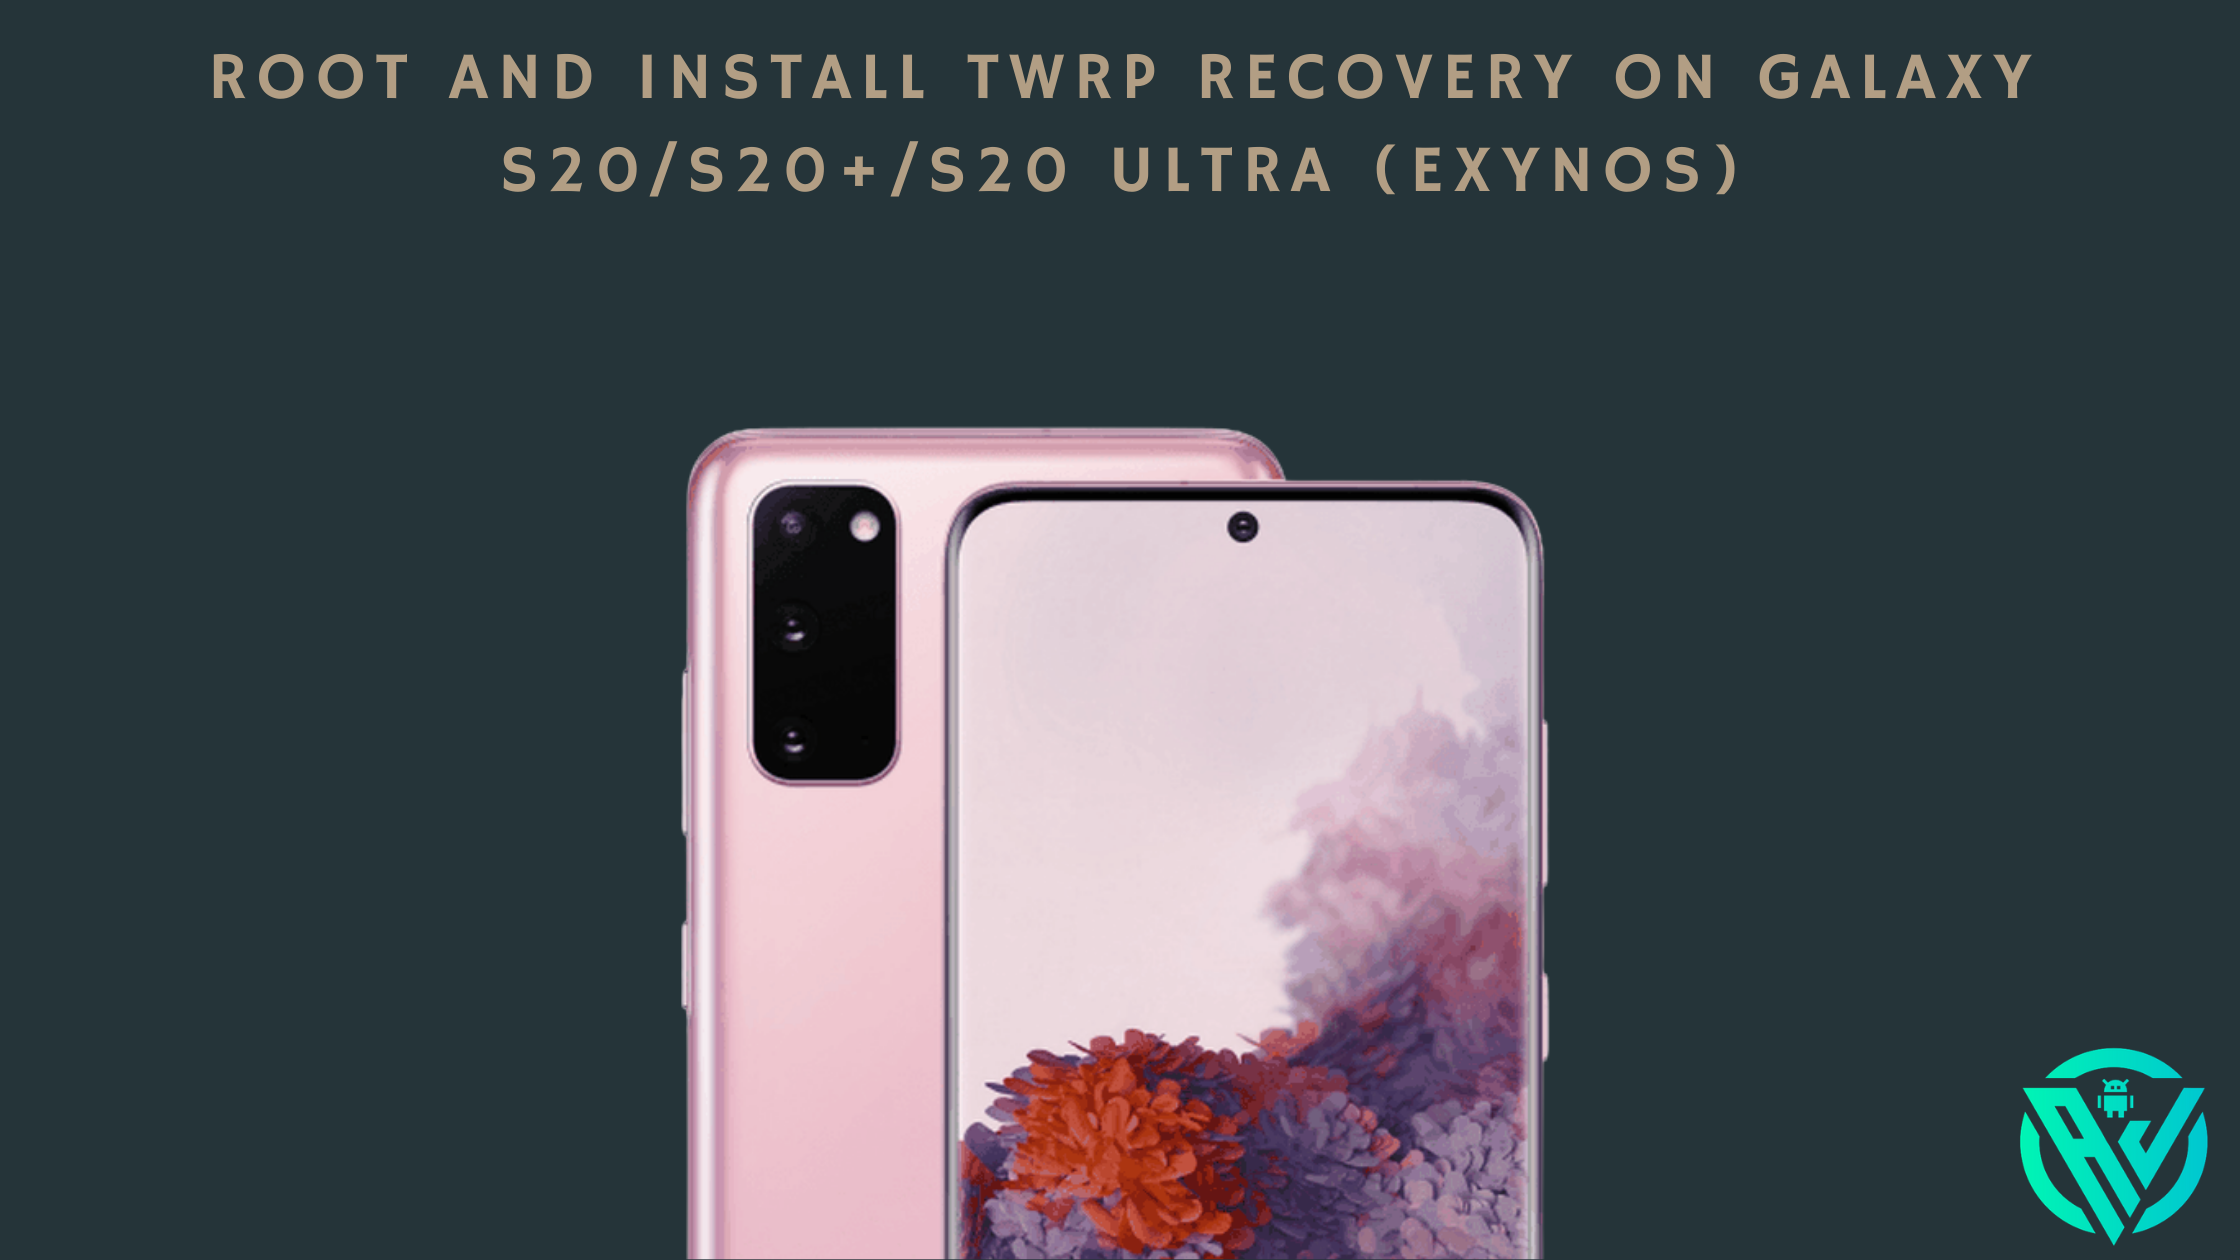 Install TWRP Recovery on Galaxy S20/S20+/S20 Ultra (Exynos) and Root with Magisk